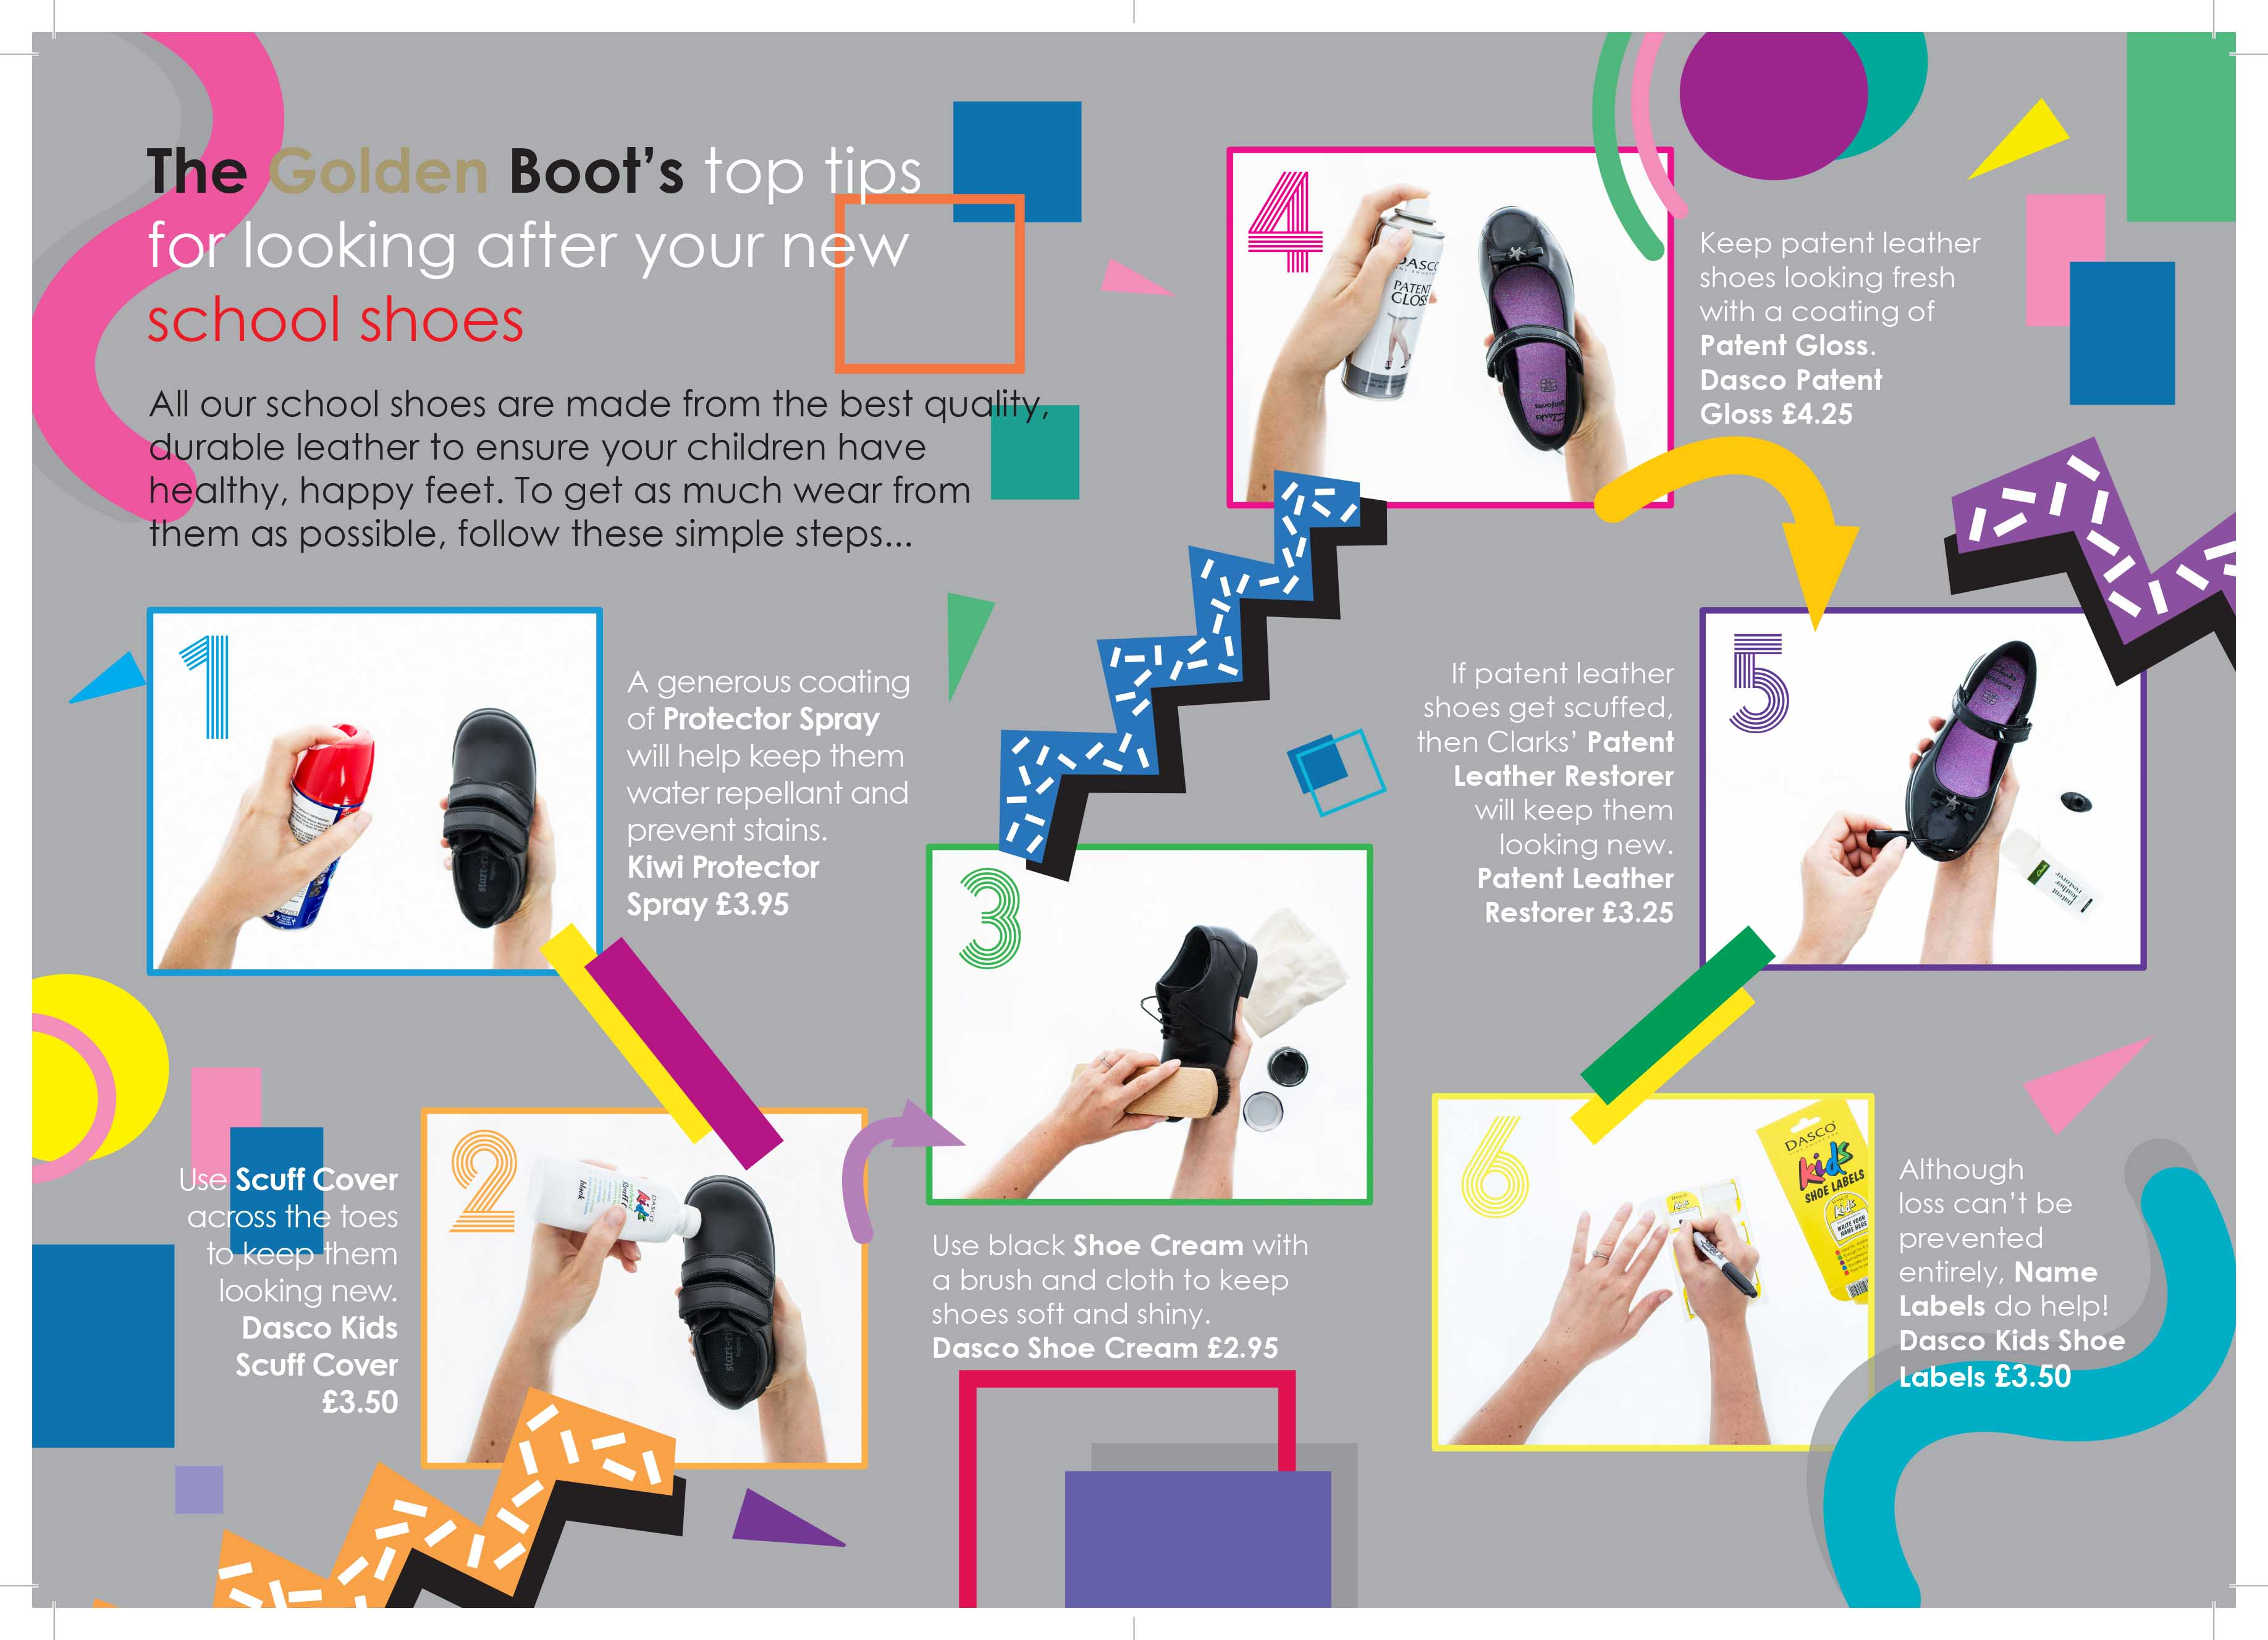 Top tips for looking after School Shoes!